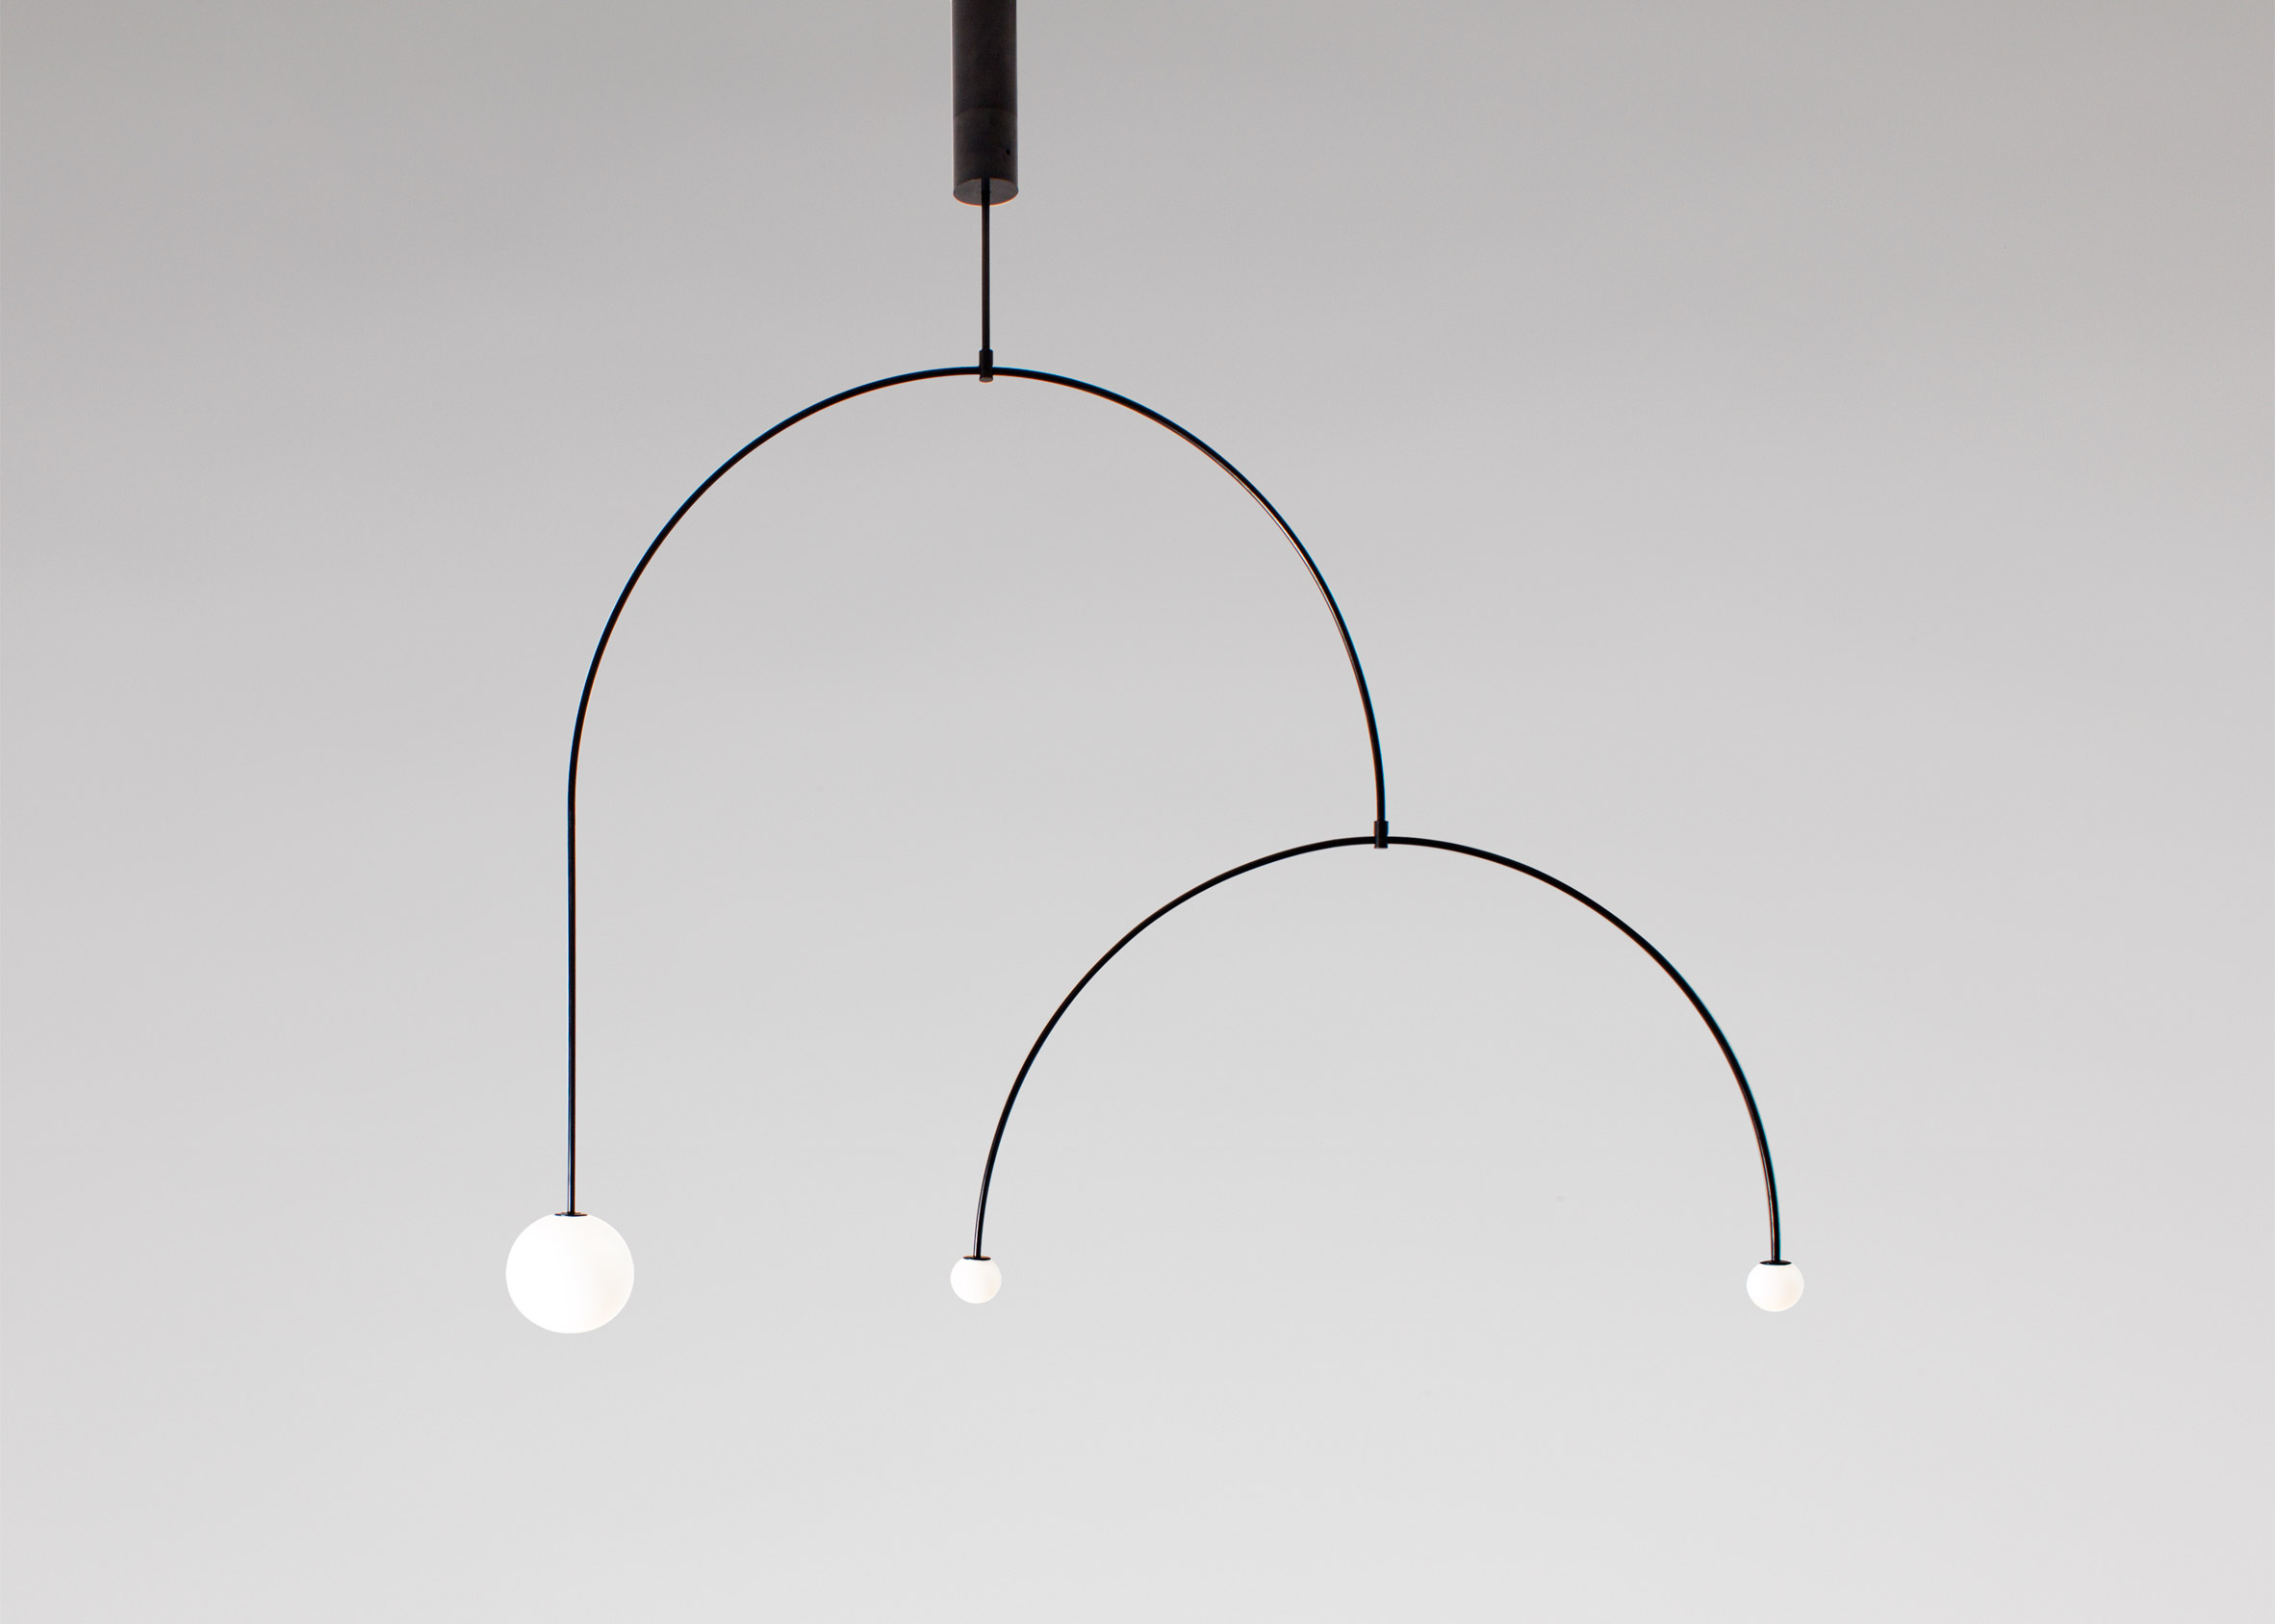 Michael Anastassiades' mobile chandelier 9 is one of James Mair's top five minimalist furniture choices